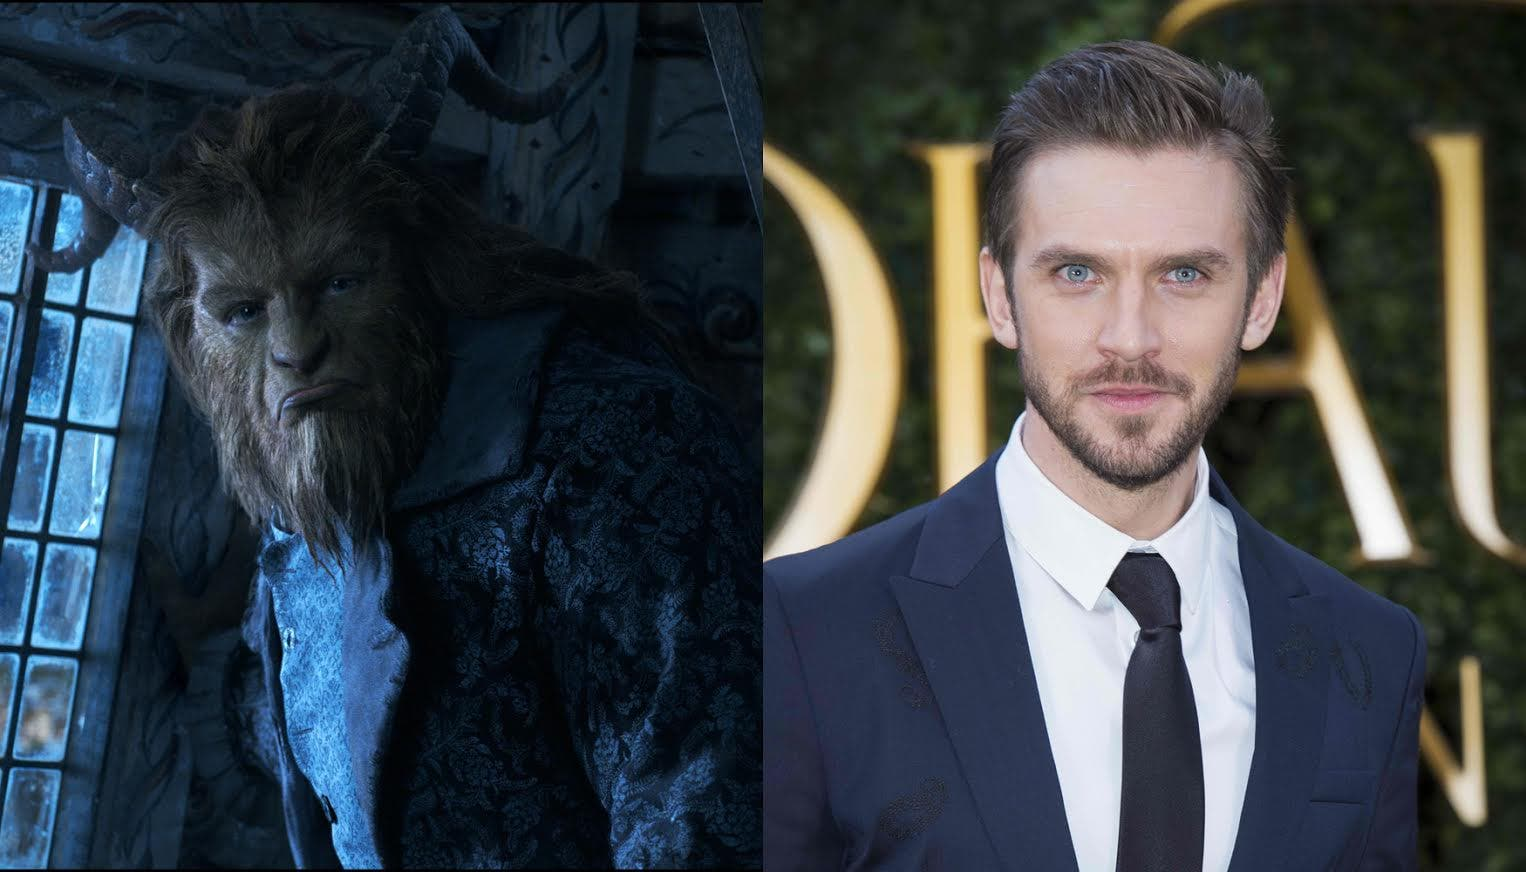 Dan Stevens The British Thespian Plays Beast A Spoiled And Arrogant Prince Transformed By Curse Of An Enchantress